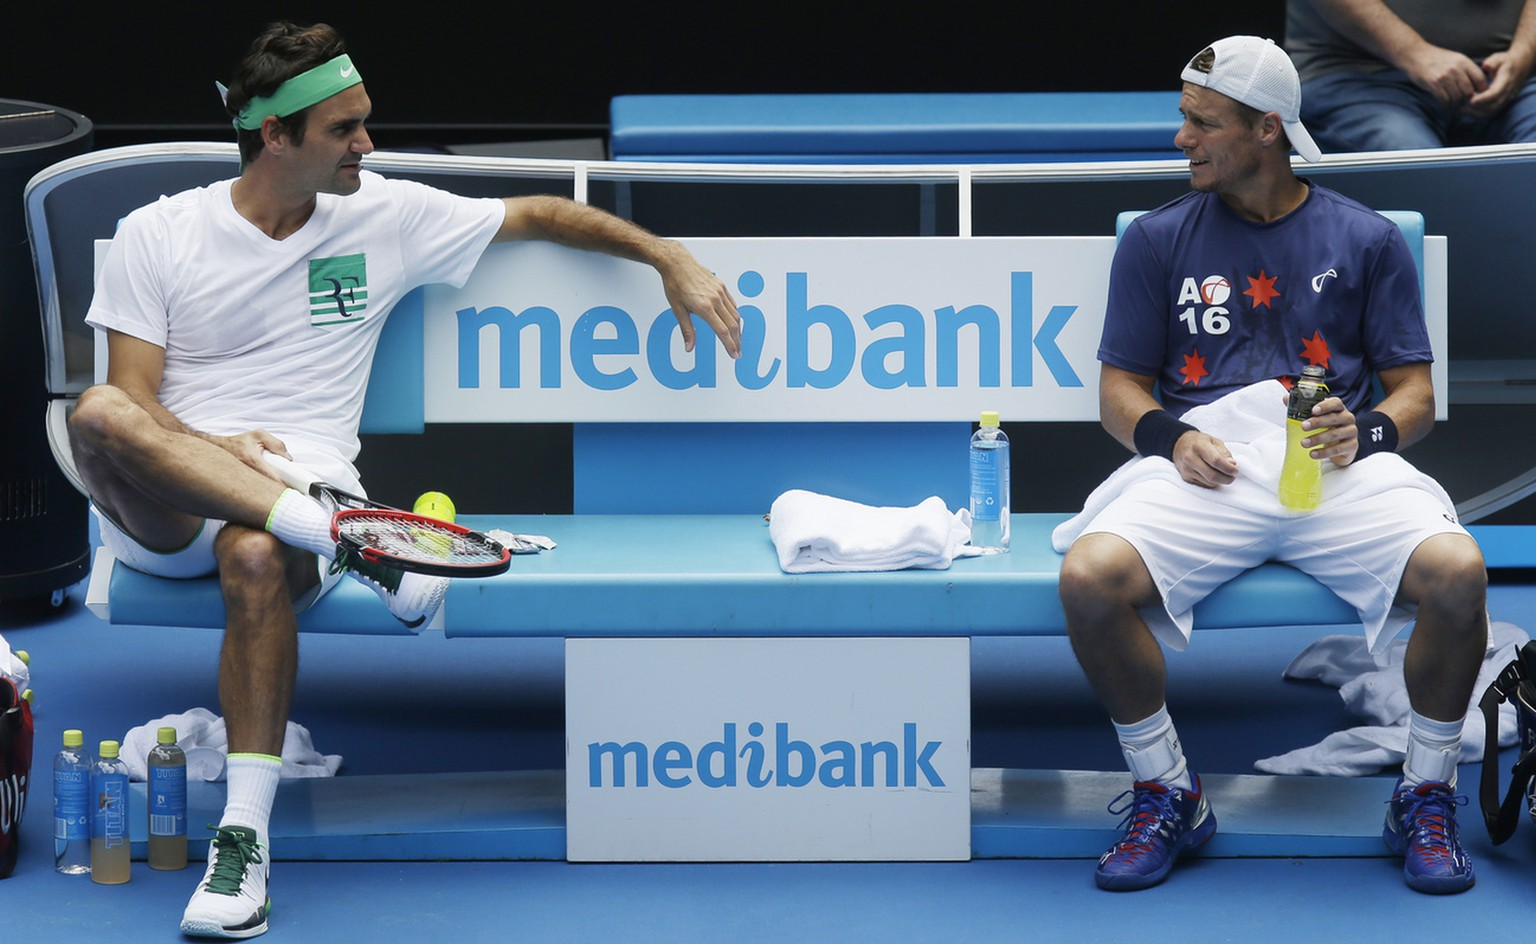 Switzerland's Roger Federer, left, talks with Australia's Lleyton Hewitt during a practice session on Rod Laver Arena ahead of the Australian Open tennis championships in Melbourne, Australia, Friday, Jan. 15, 2016.(AP Photo/Mark Baker)